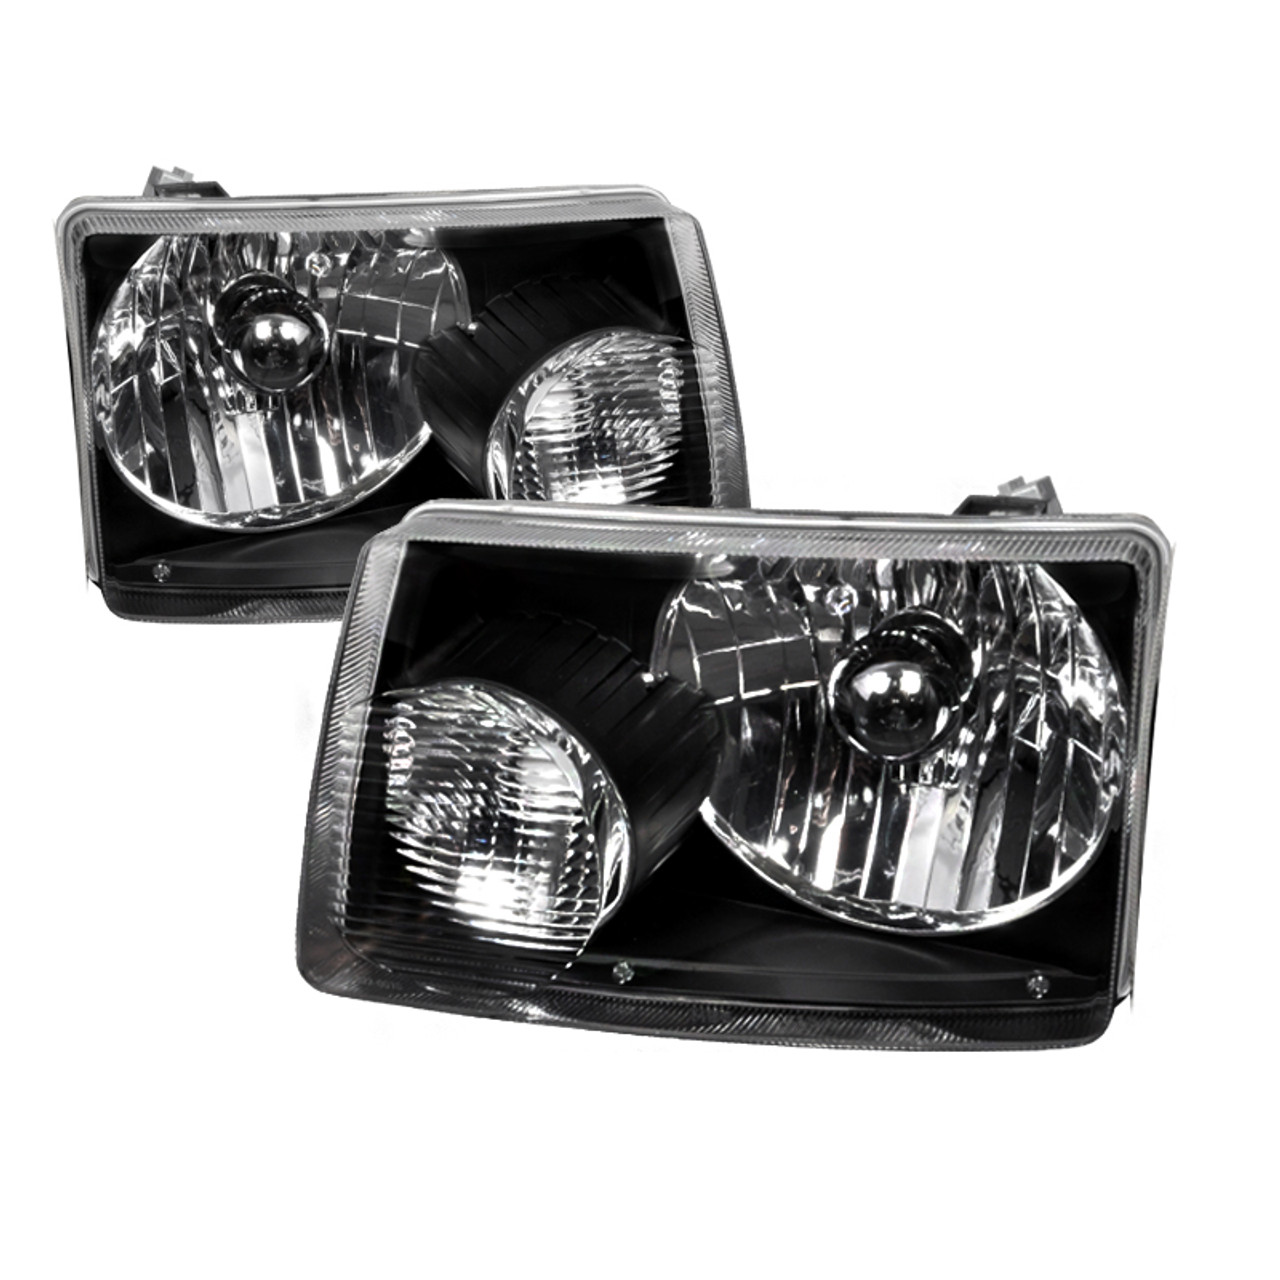 FOR FORD RANGER CHROME HOUSING CLEAR HEAD LIGHTS 1-PIECE W//AMBER REFLECTOR LAMPS